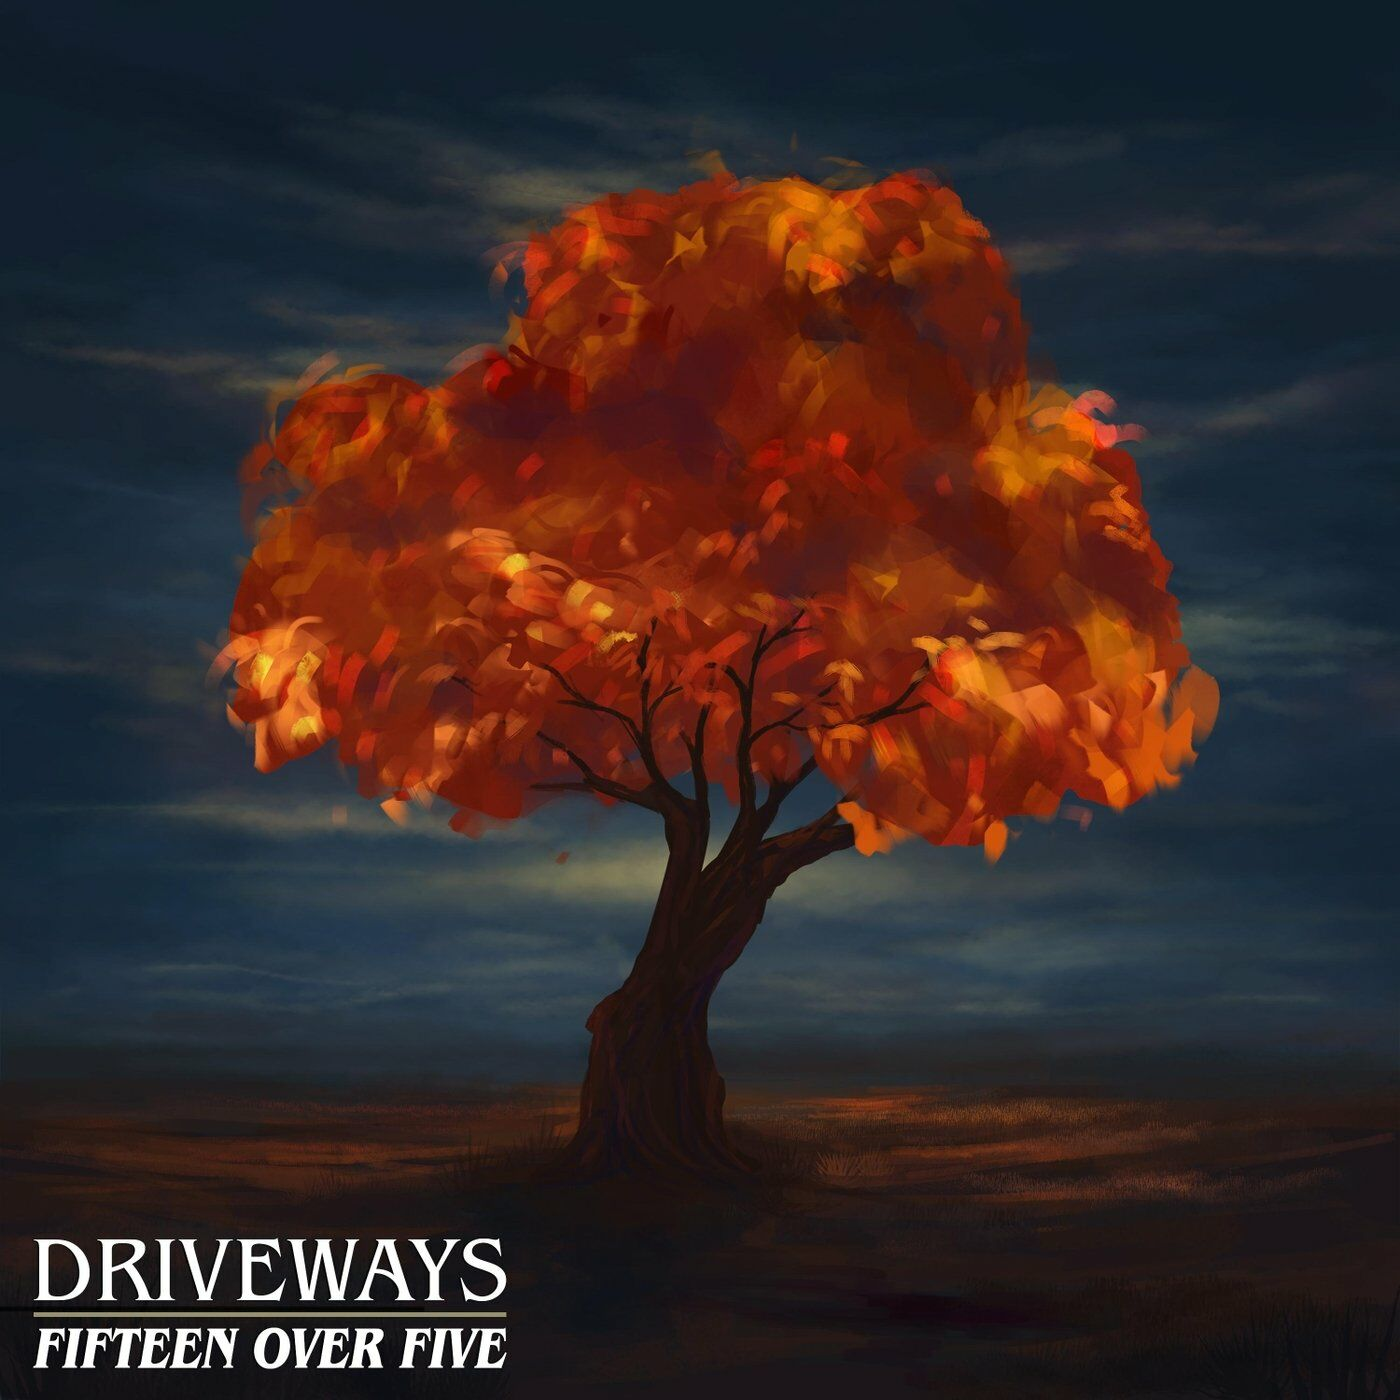 Driveways - Fifteen over Five [single] (2020)